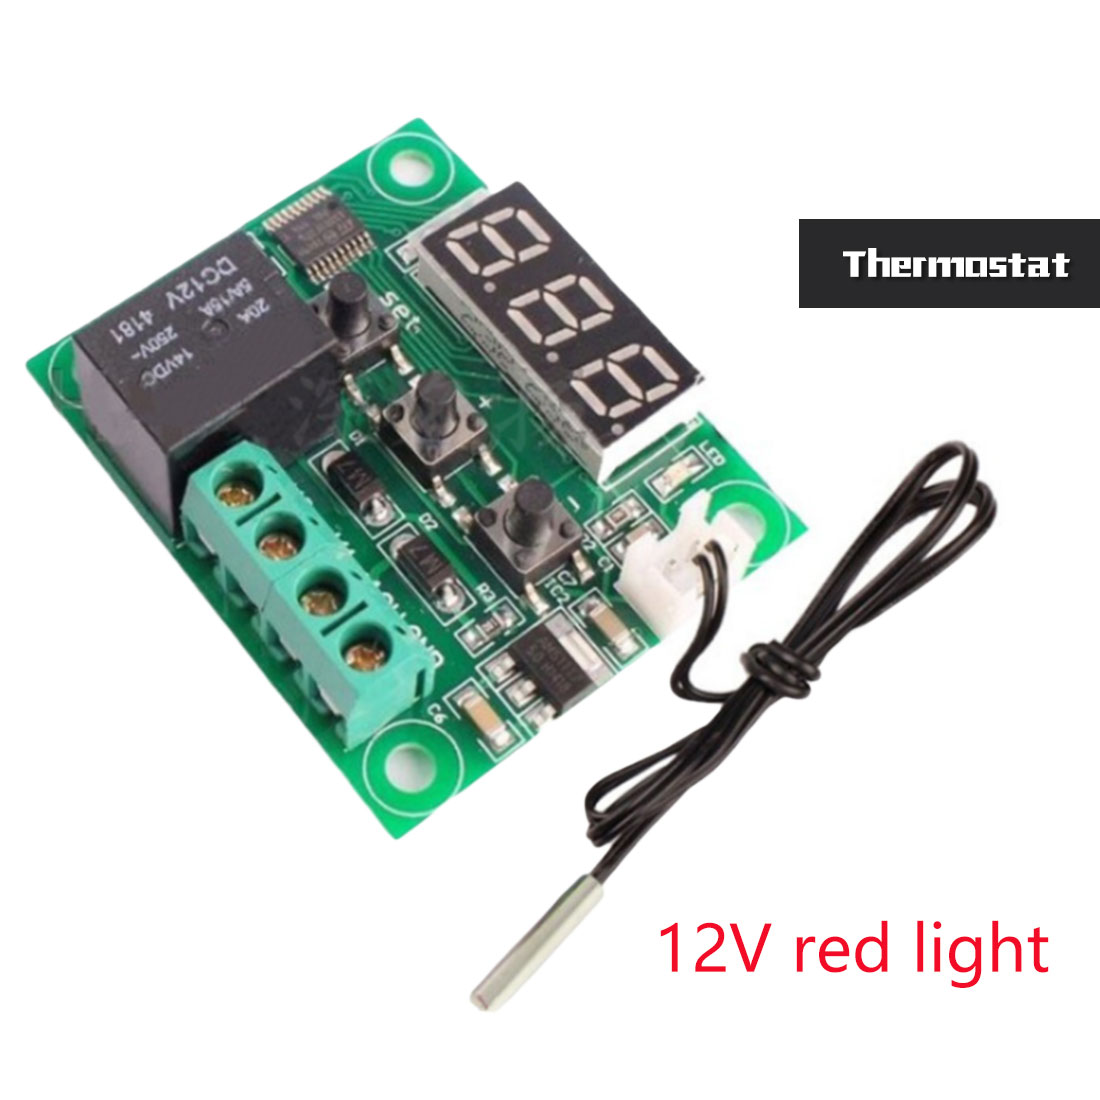 1PCS W1209 DC 12/24V heat cool temp thermostat temperature control switch temperature controller thermometer thermo controller кавинтон форте 10 мг n30 табл